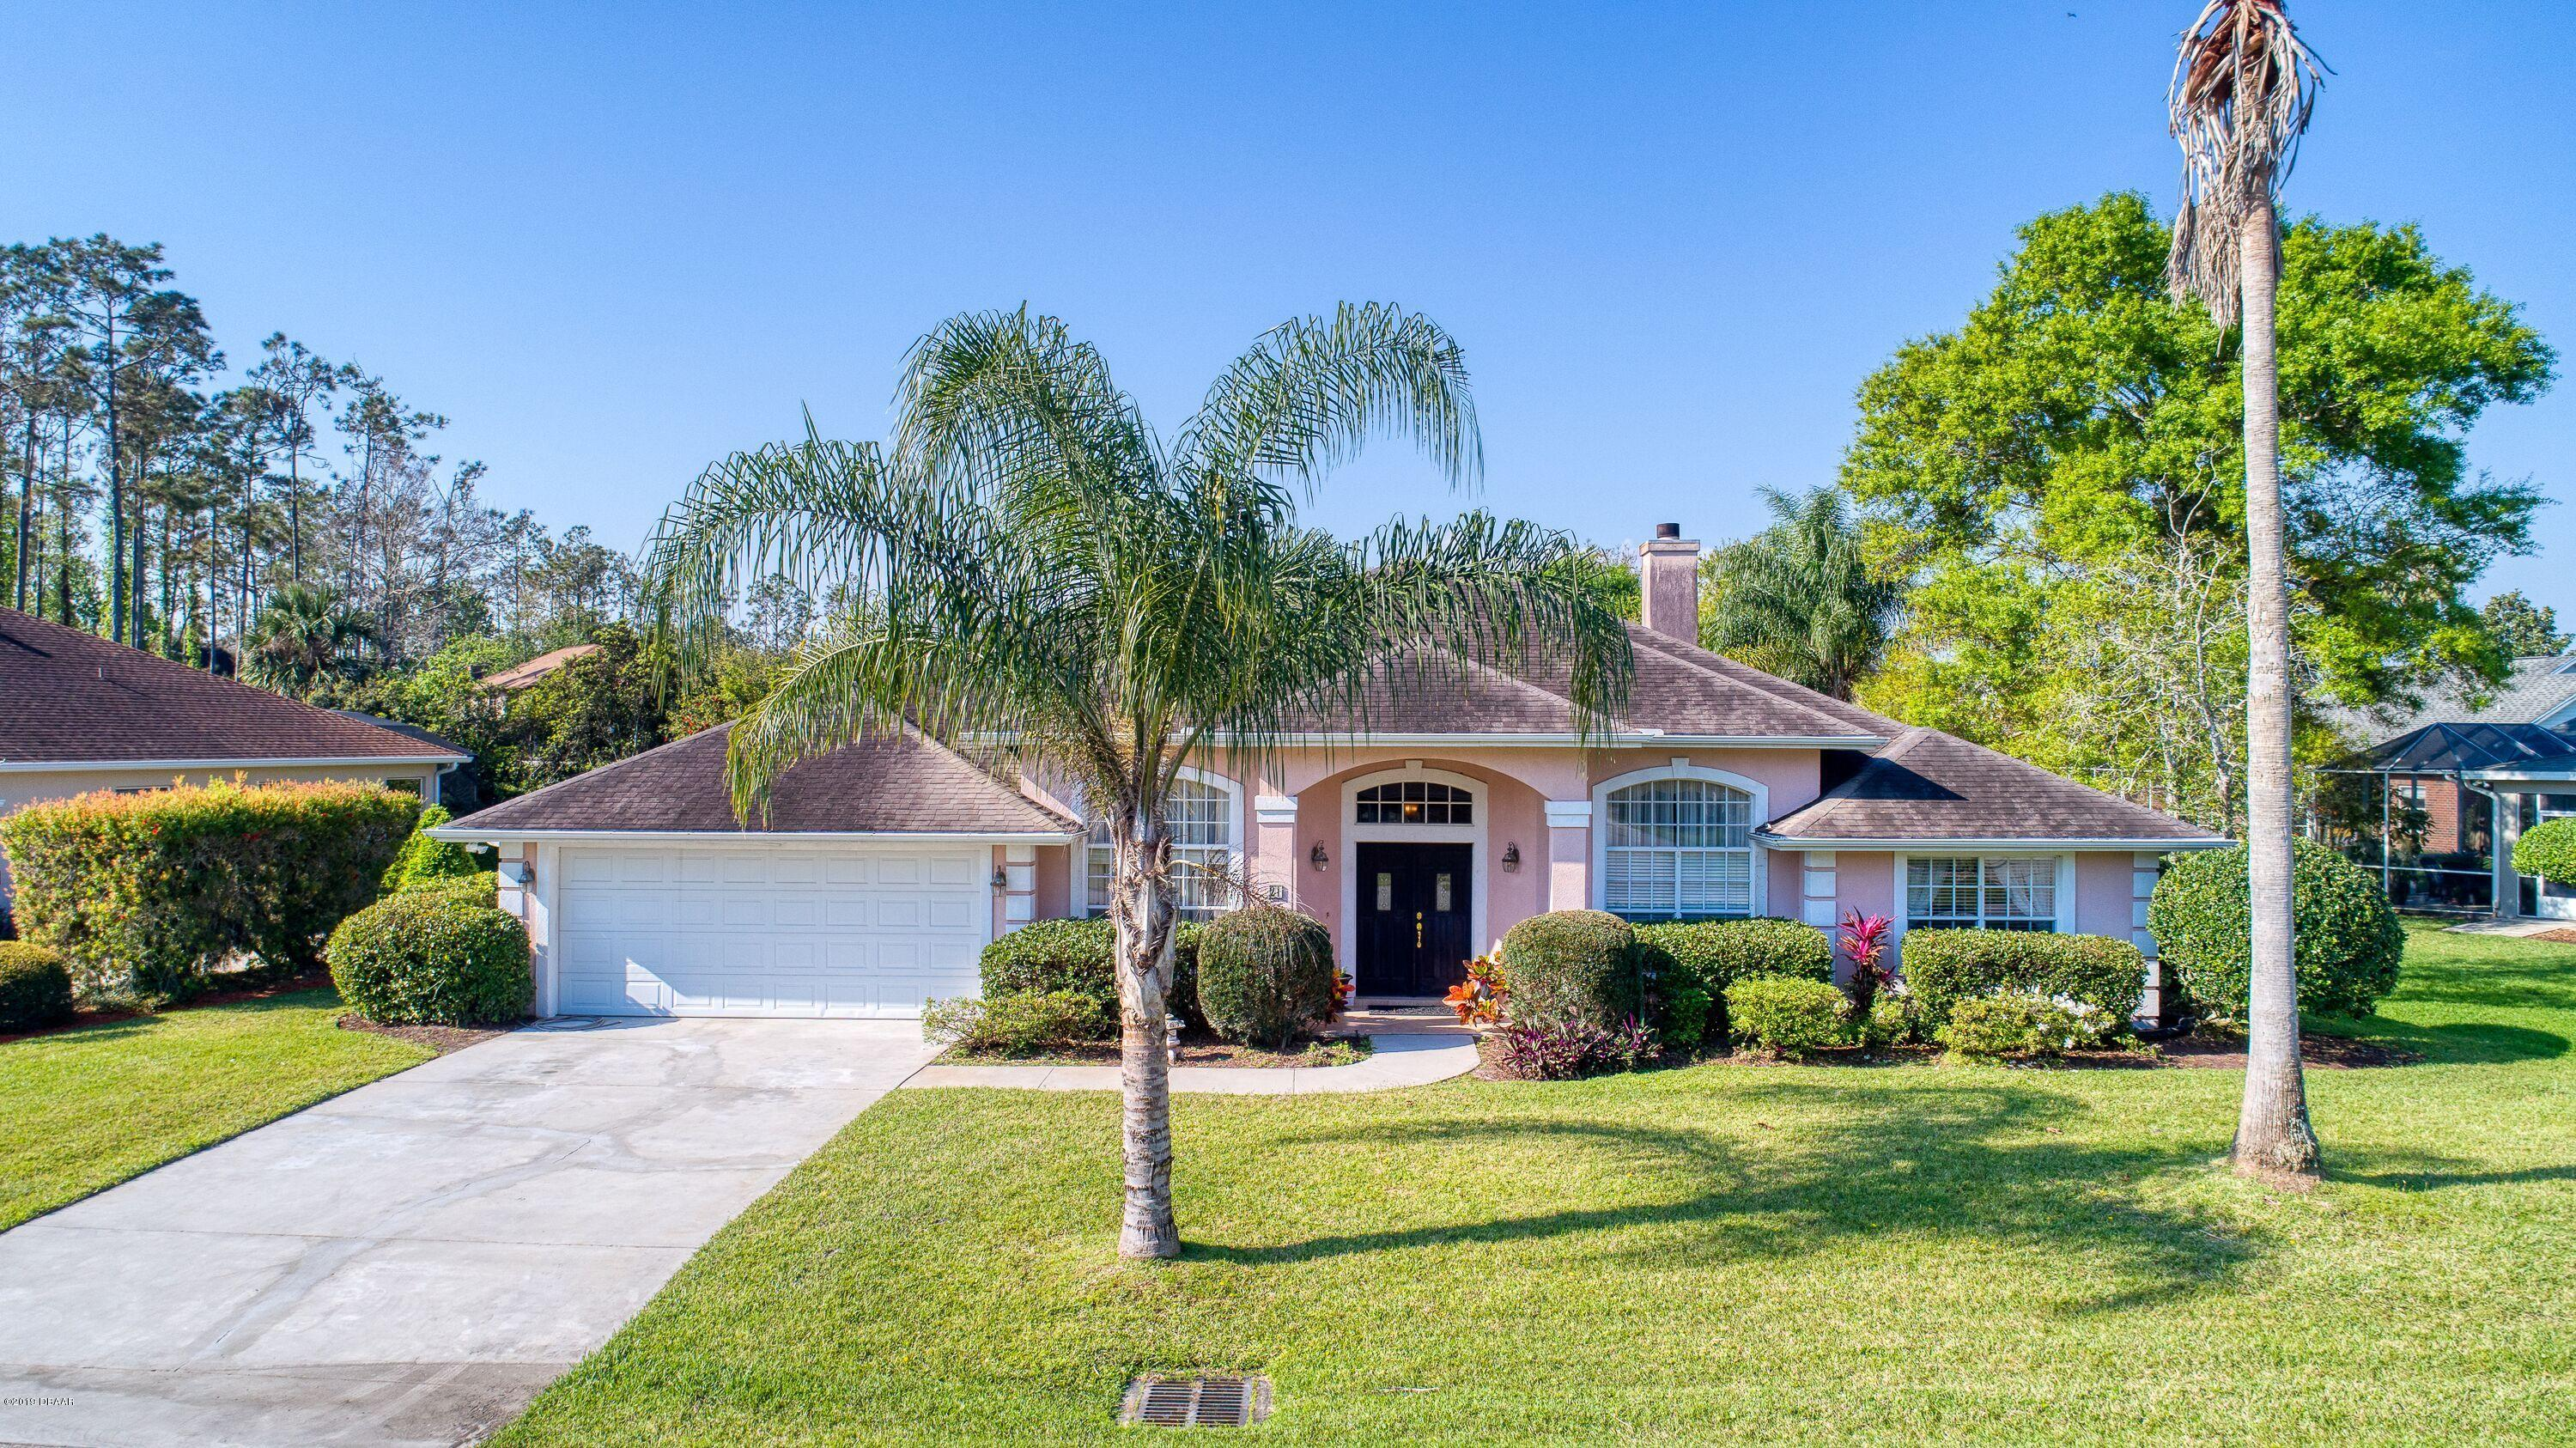 21 N Foxfords Chase 32174 - One of Ormond Beach Homes for Sale